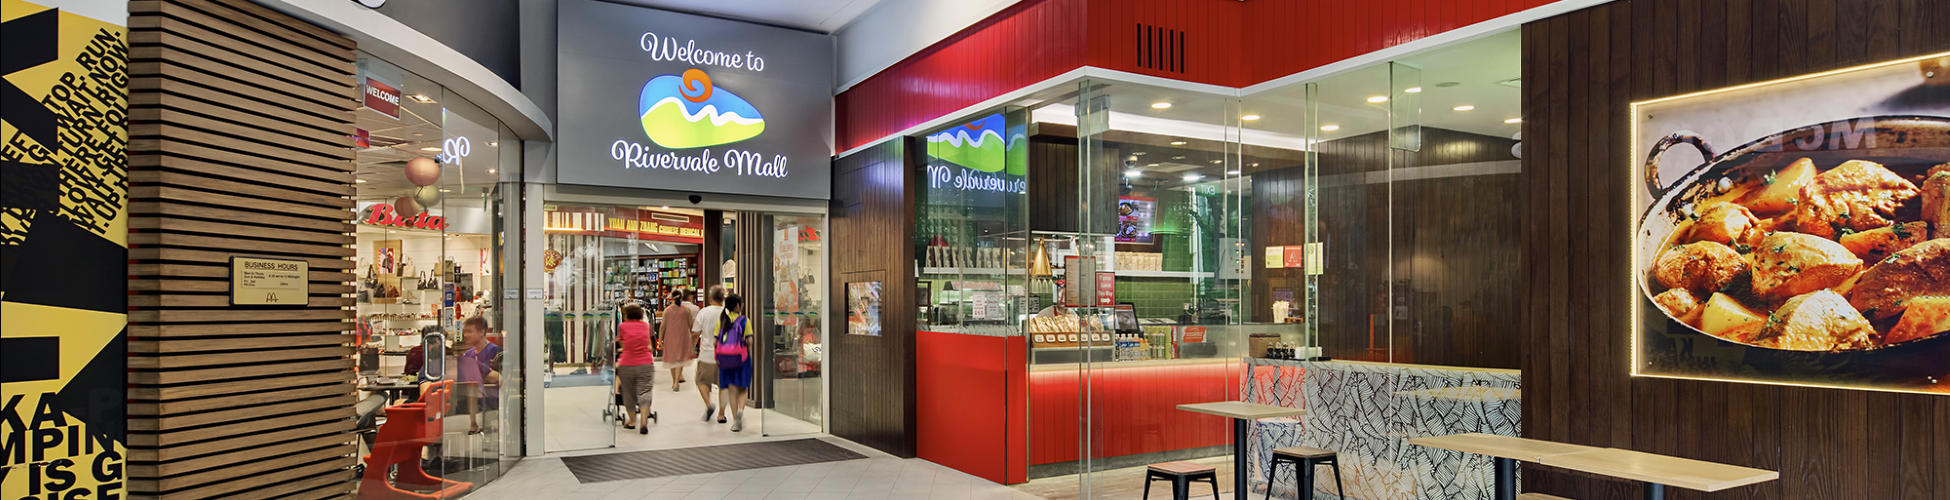 Rivervale Mall – Rivervale Mall is a Shopping Malls in Singapore